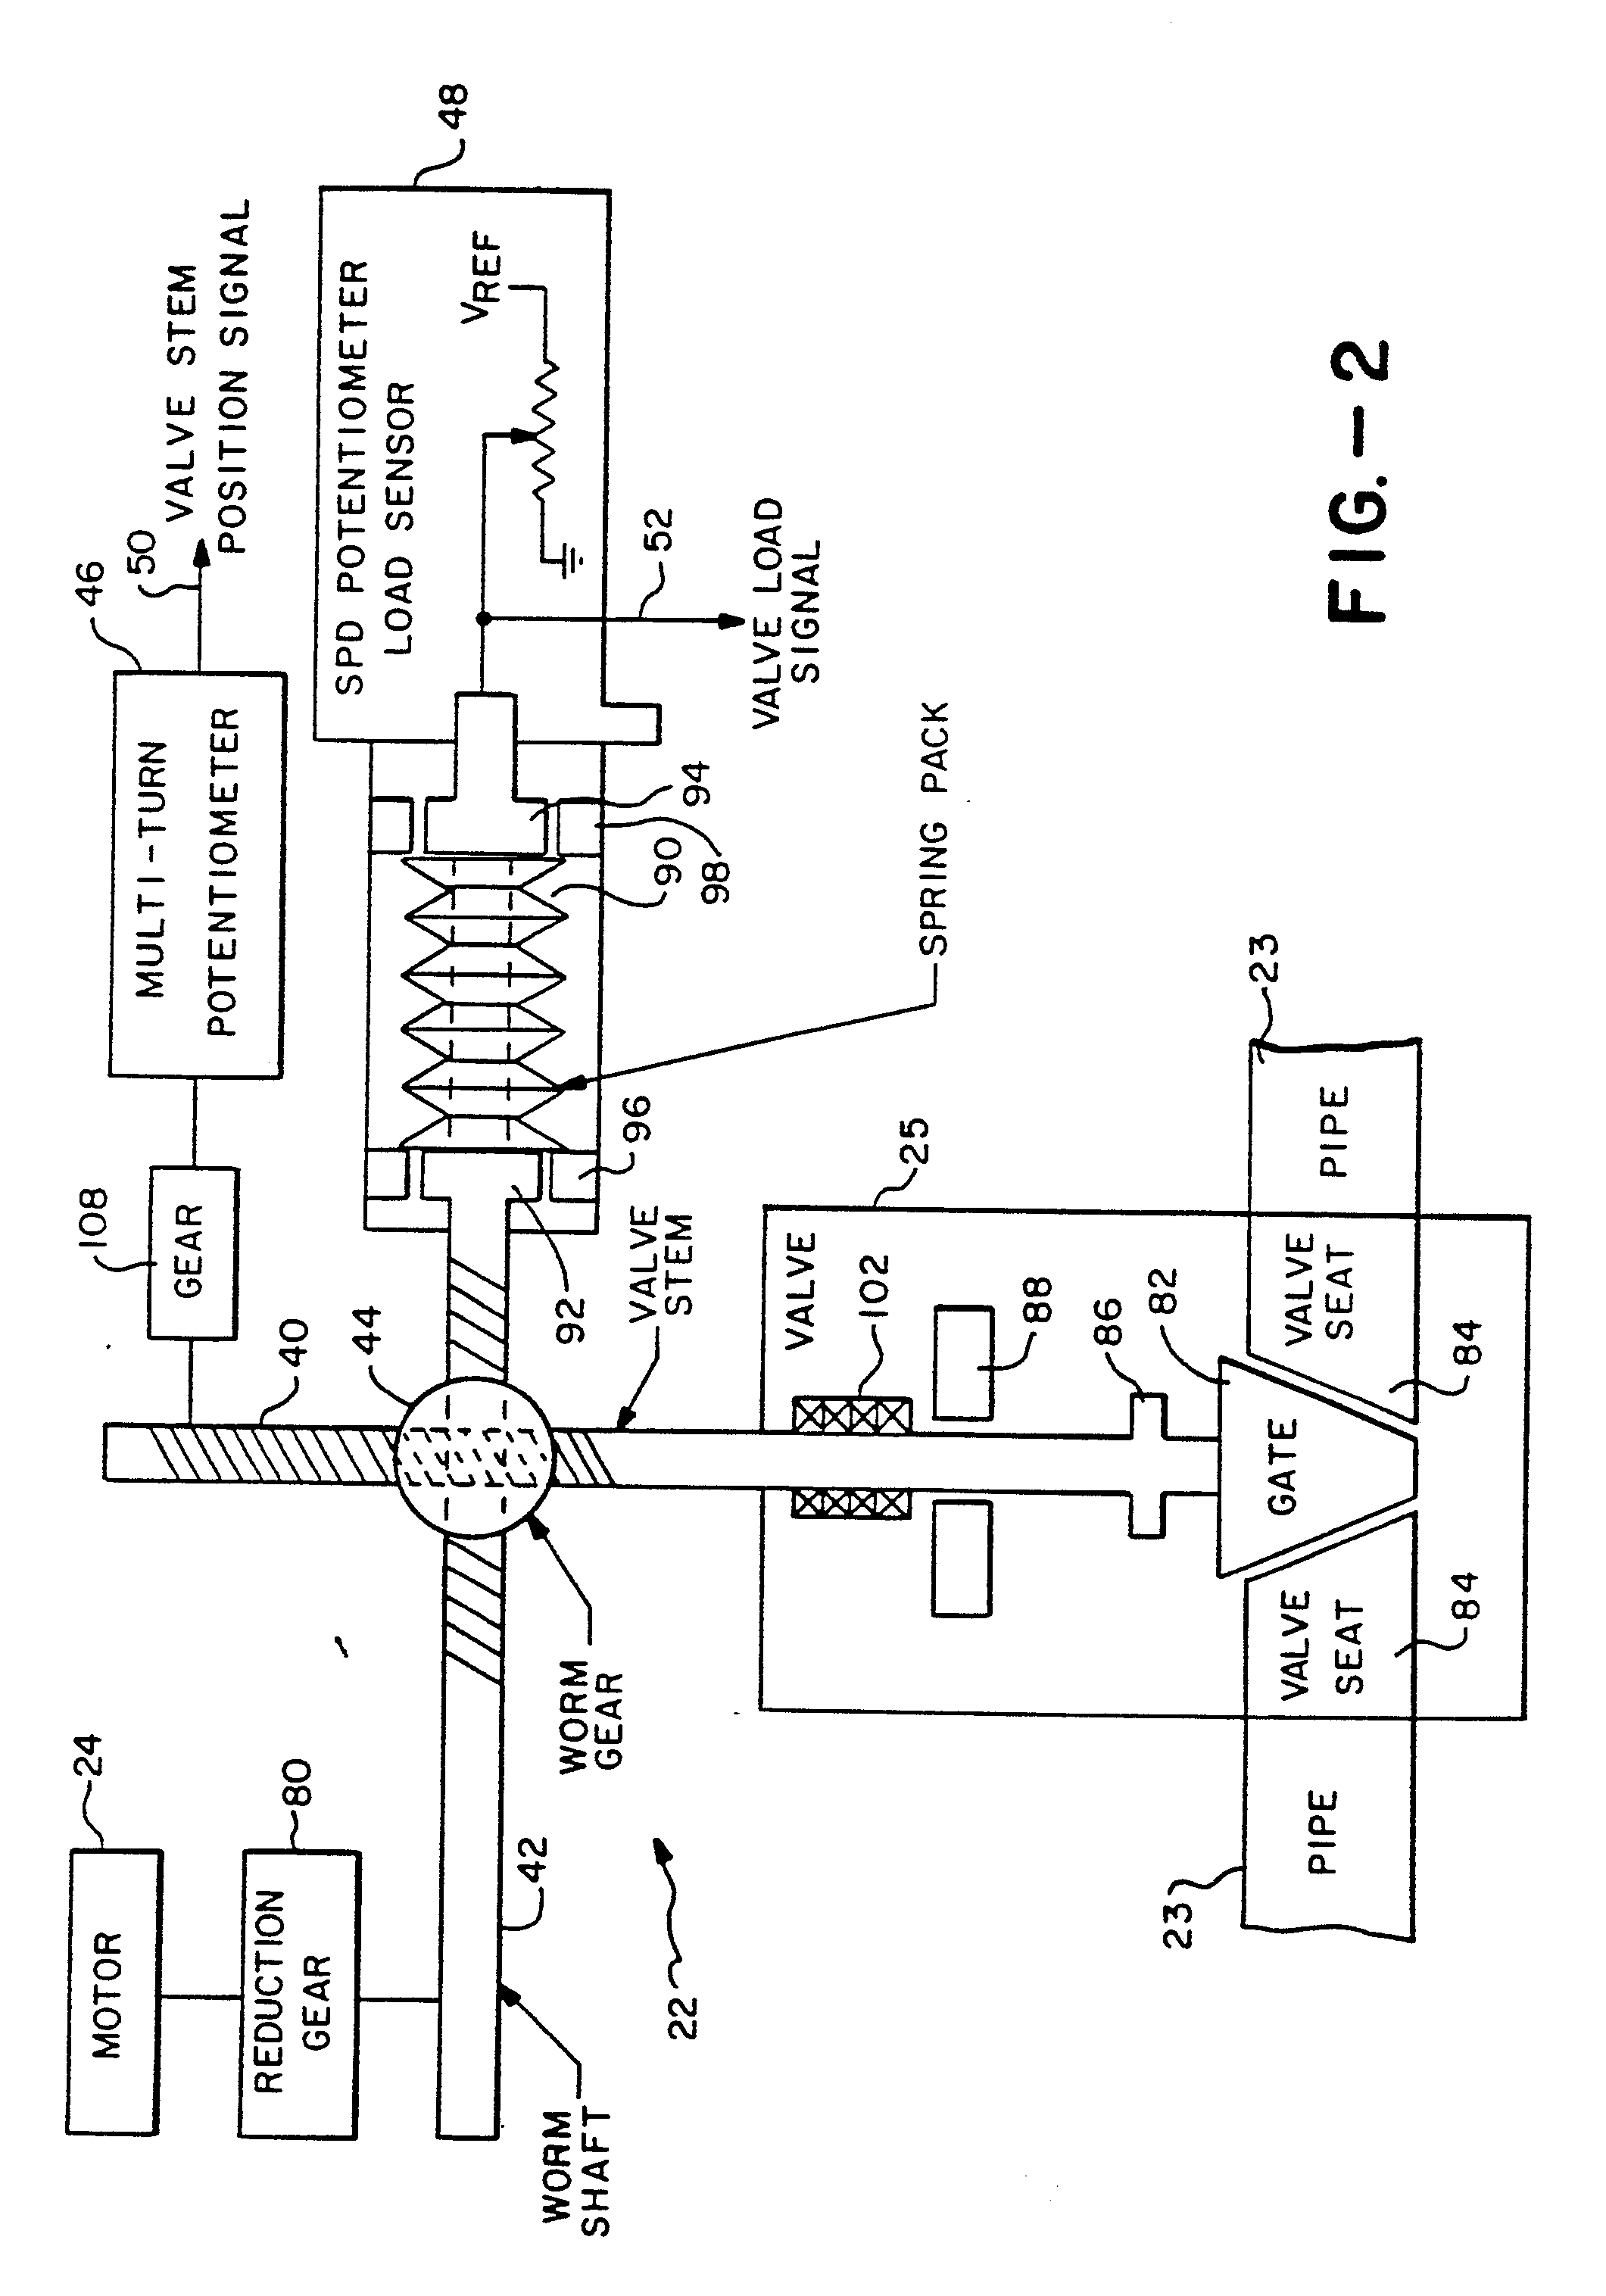 imgf0002 patent ep0287299a2 microprocessor based control and diagnostic motor operated valve wiring diagram at gsmx.co